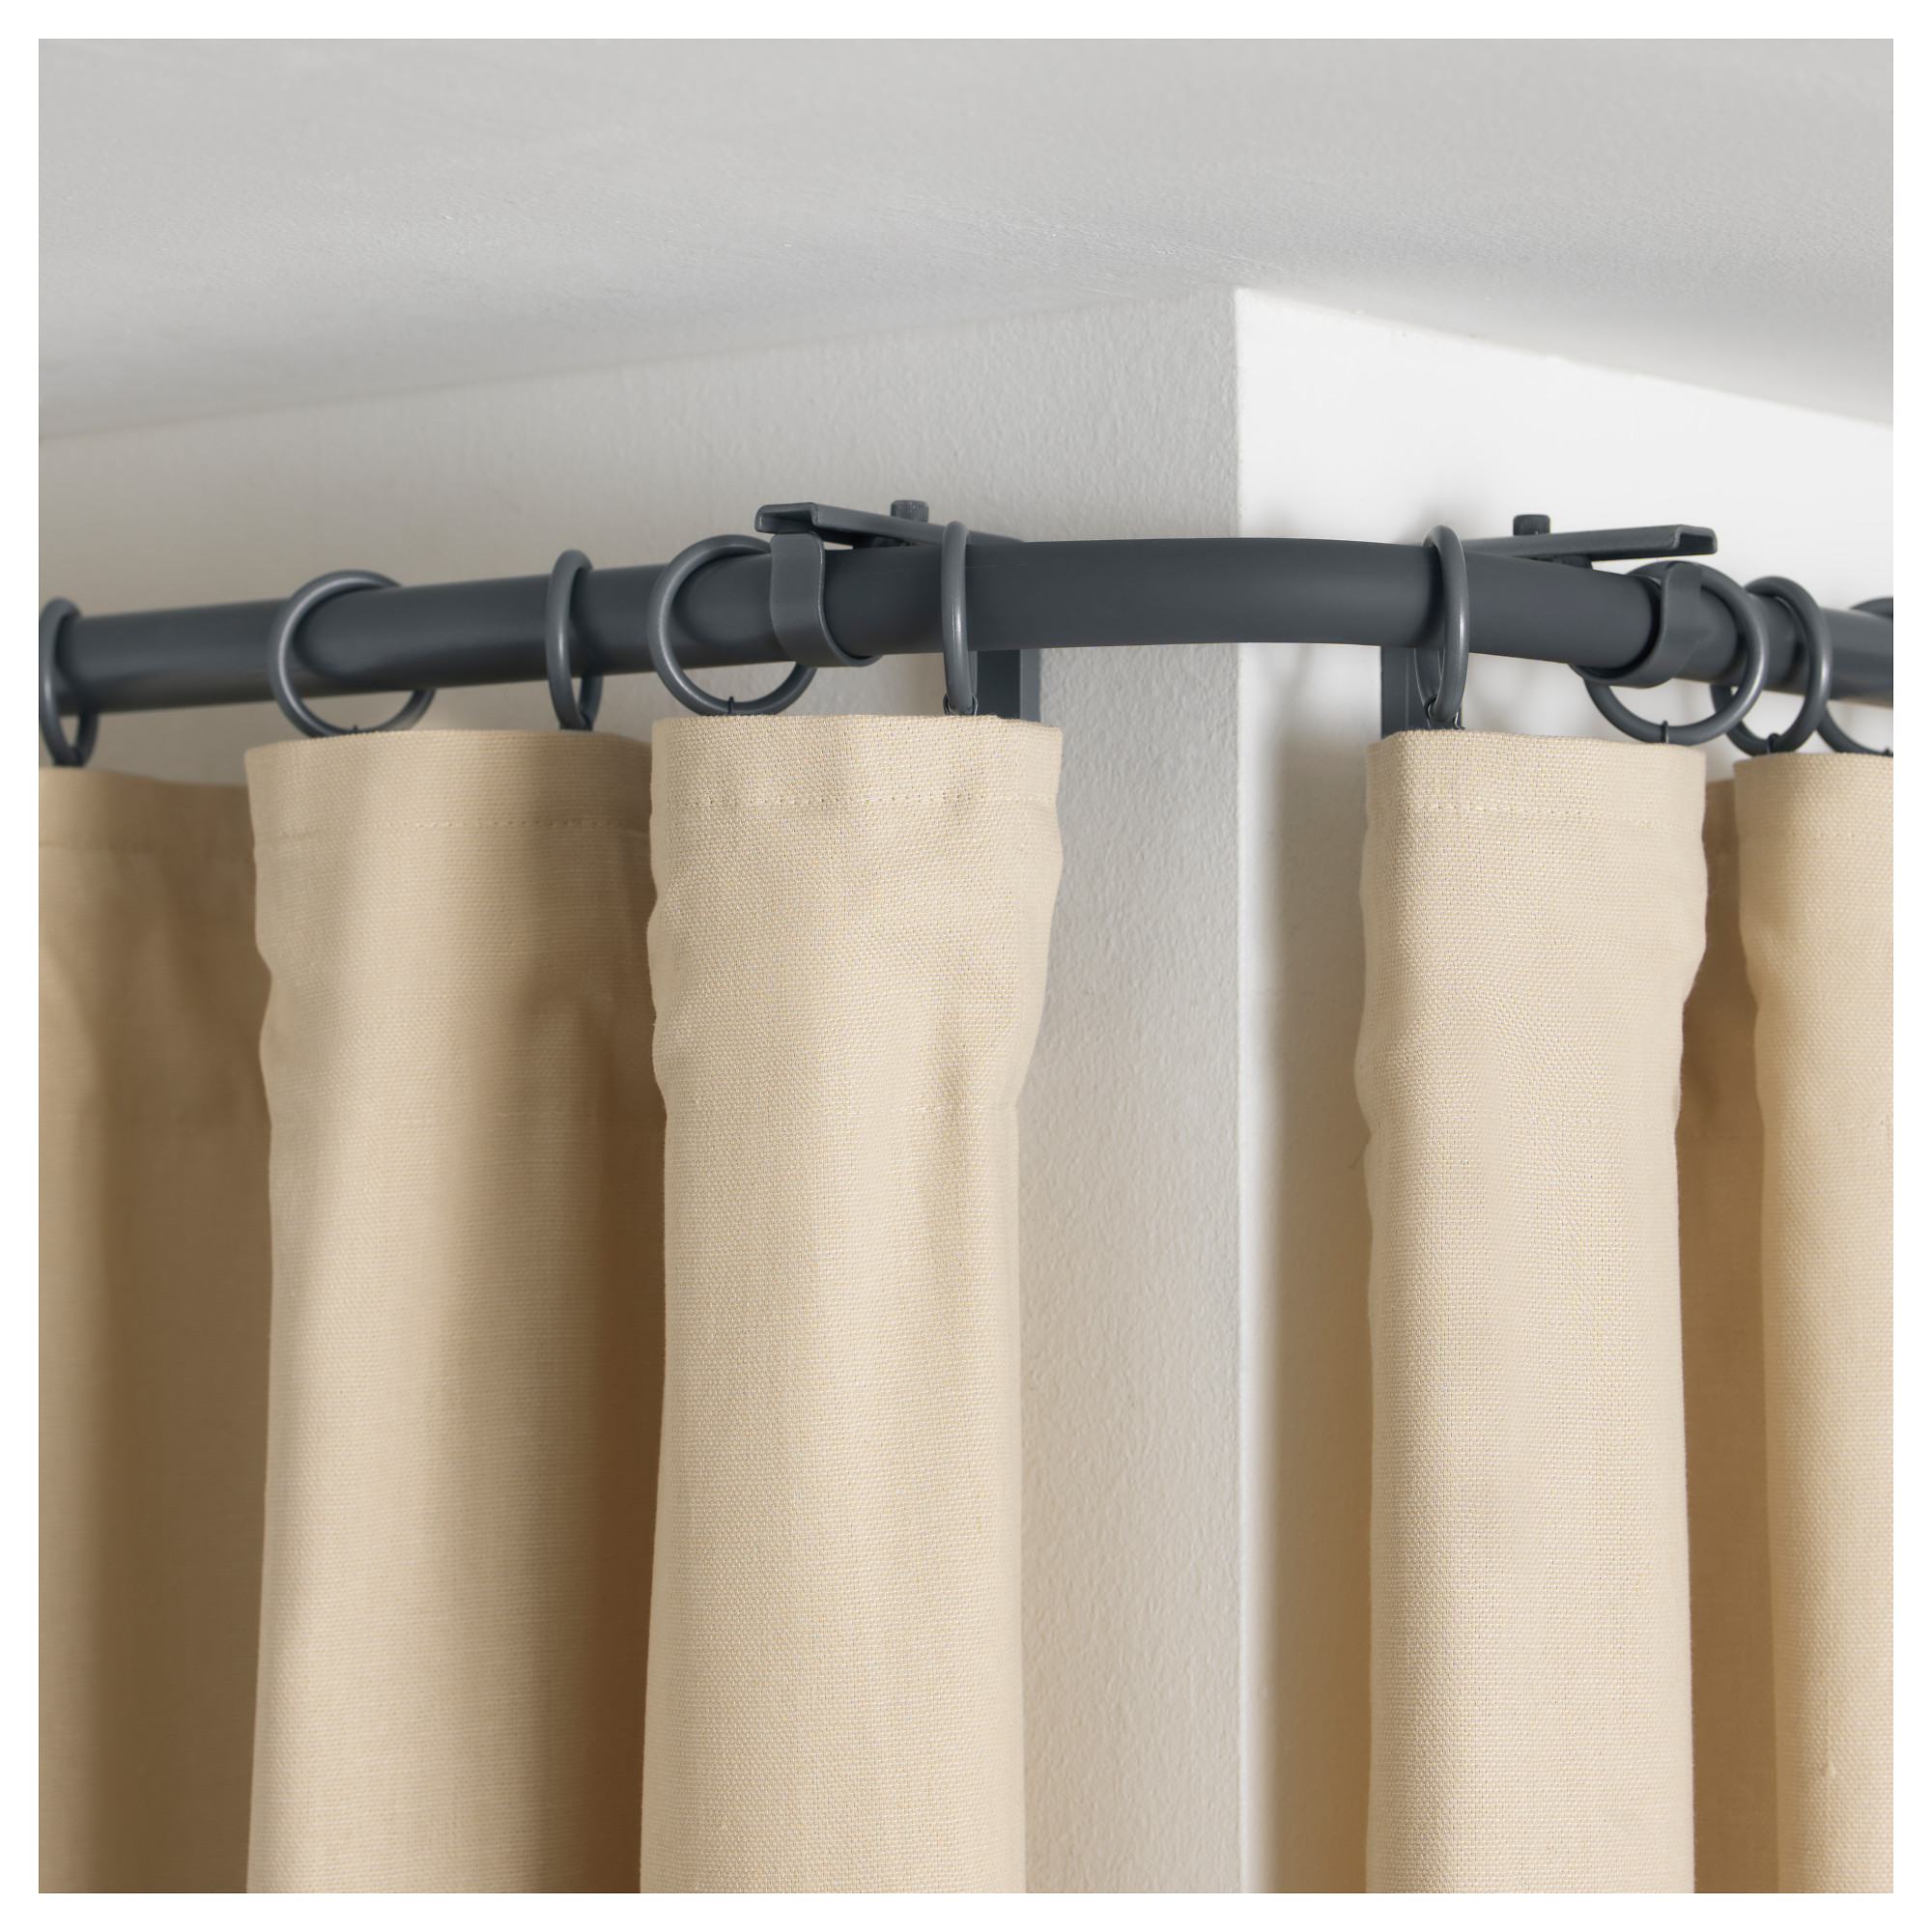 lowes adjustable curtains treatments full mounted corner ceiling curtain size window rods